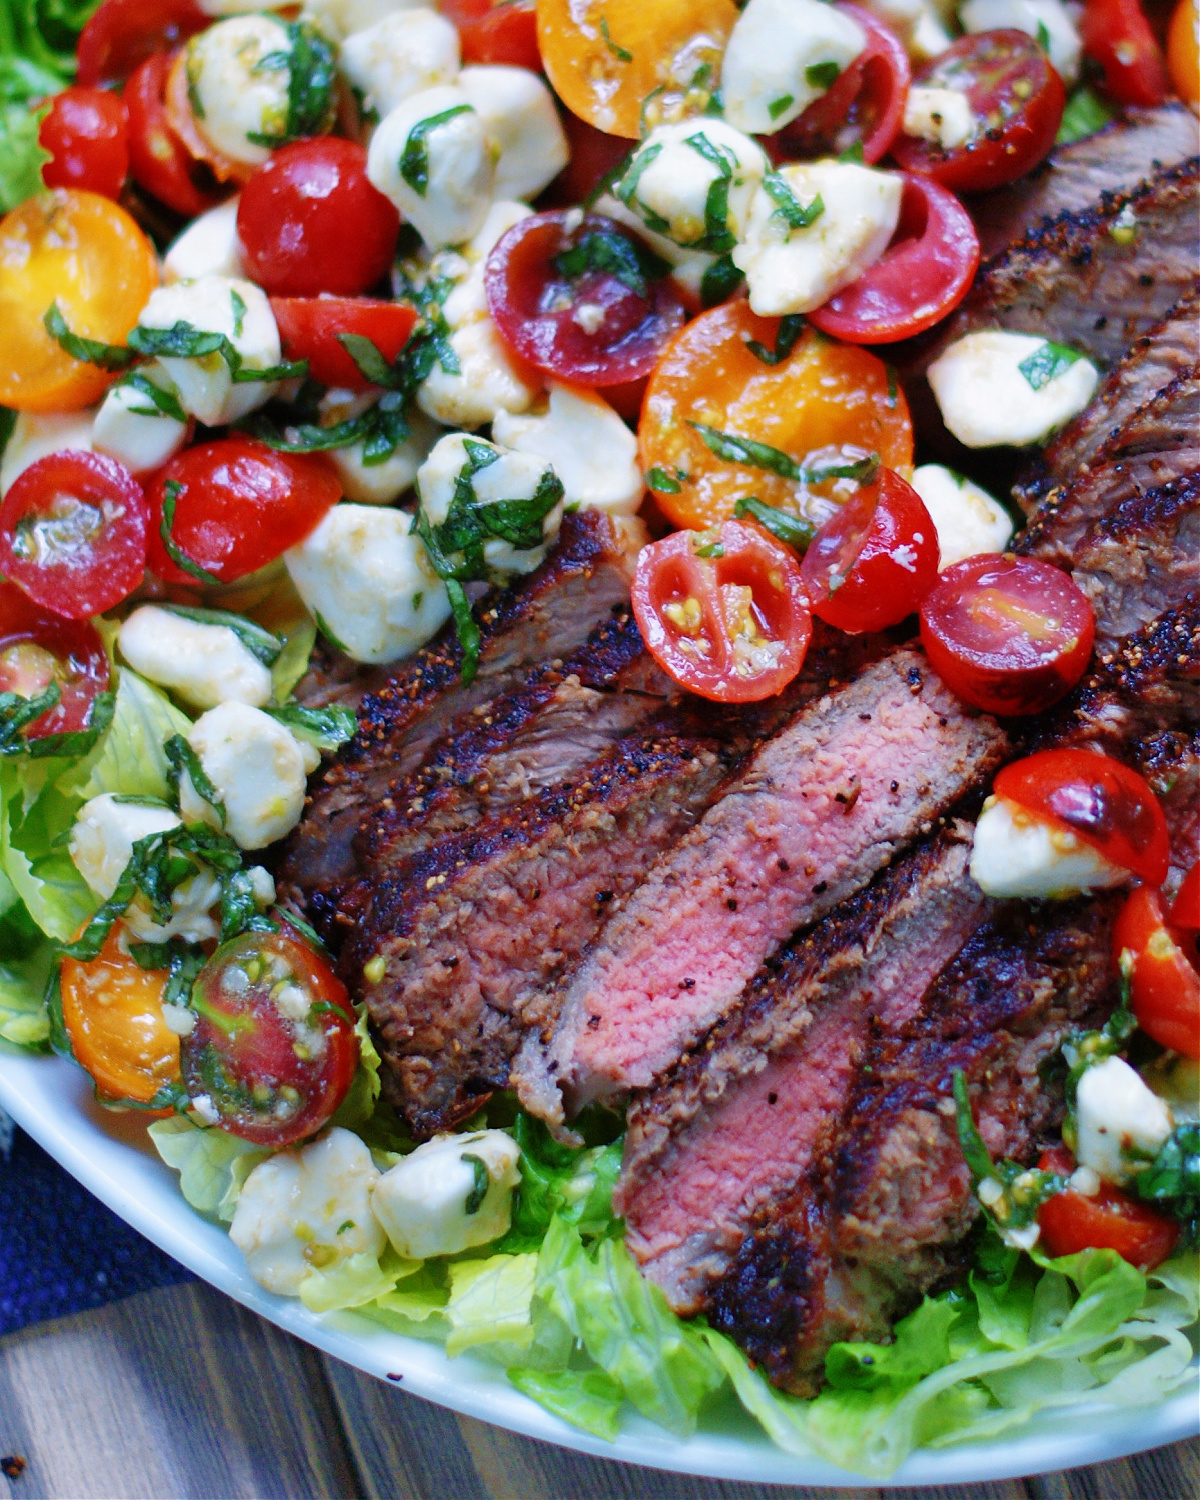 Close up of a caprese salad with steak to show ingredients and texture